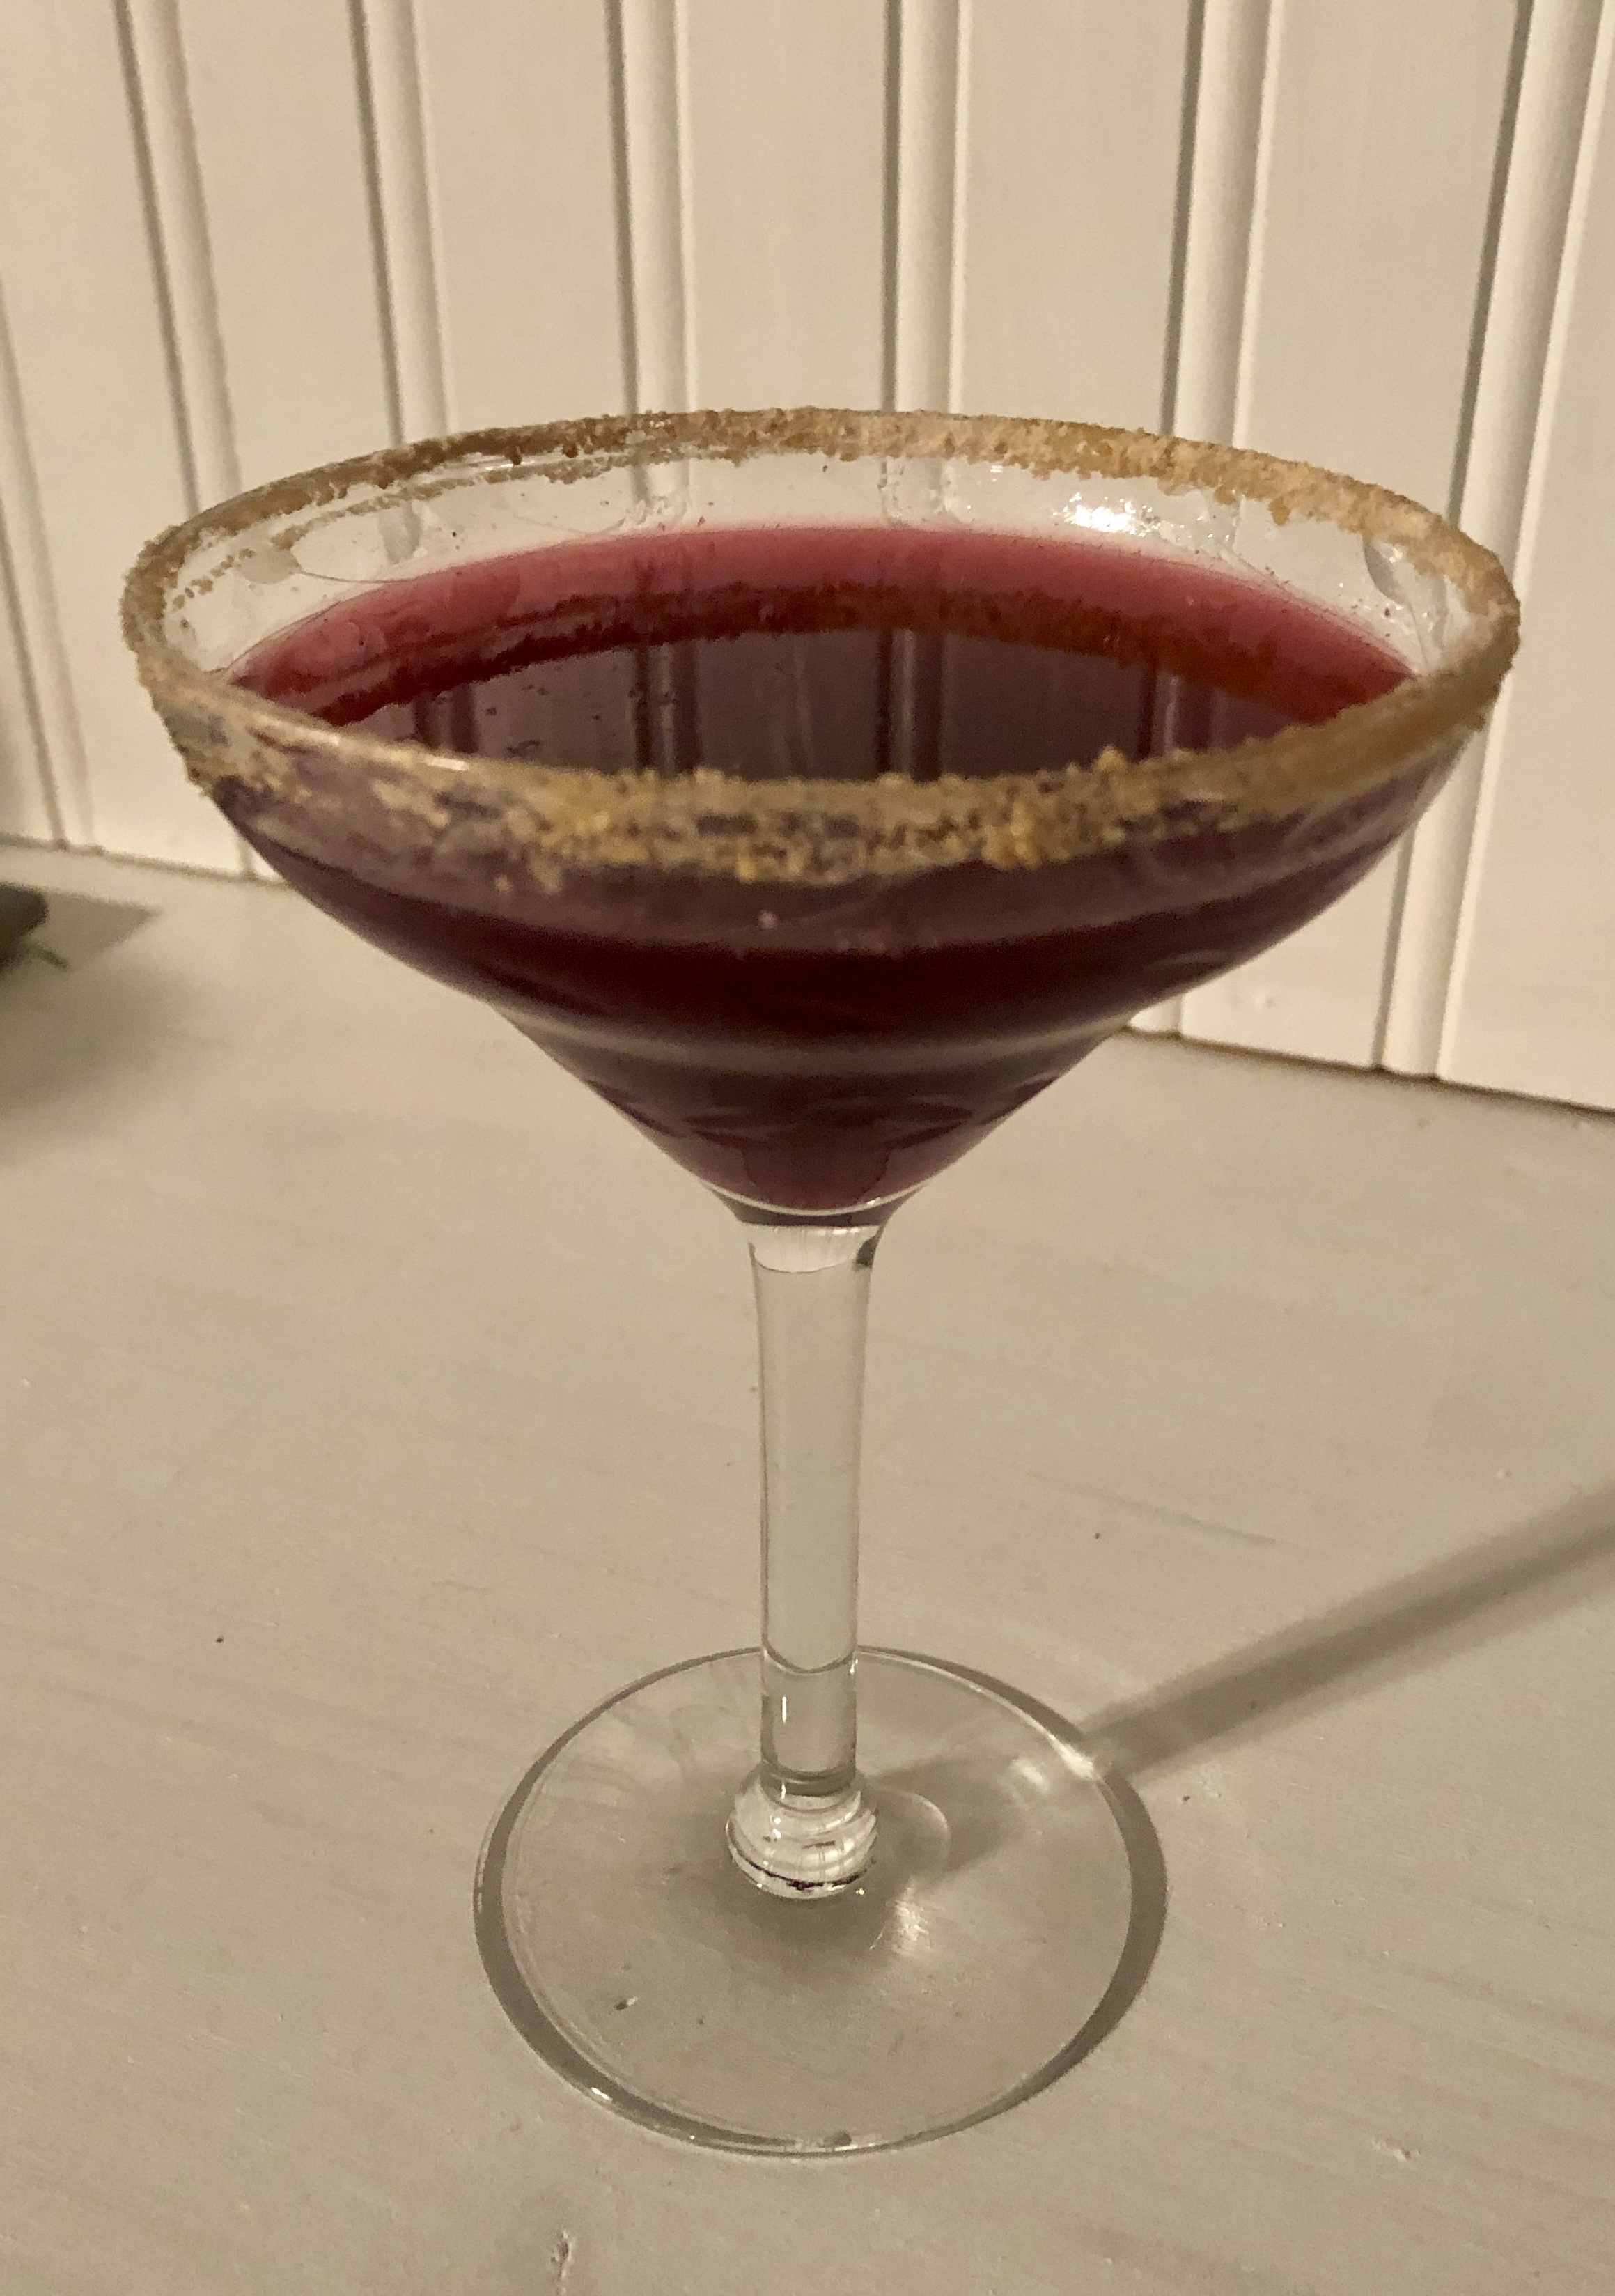 Sugar House Widow cocktail